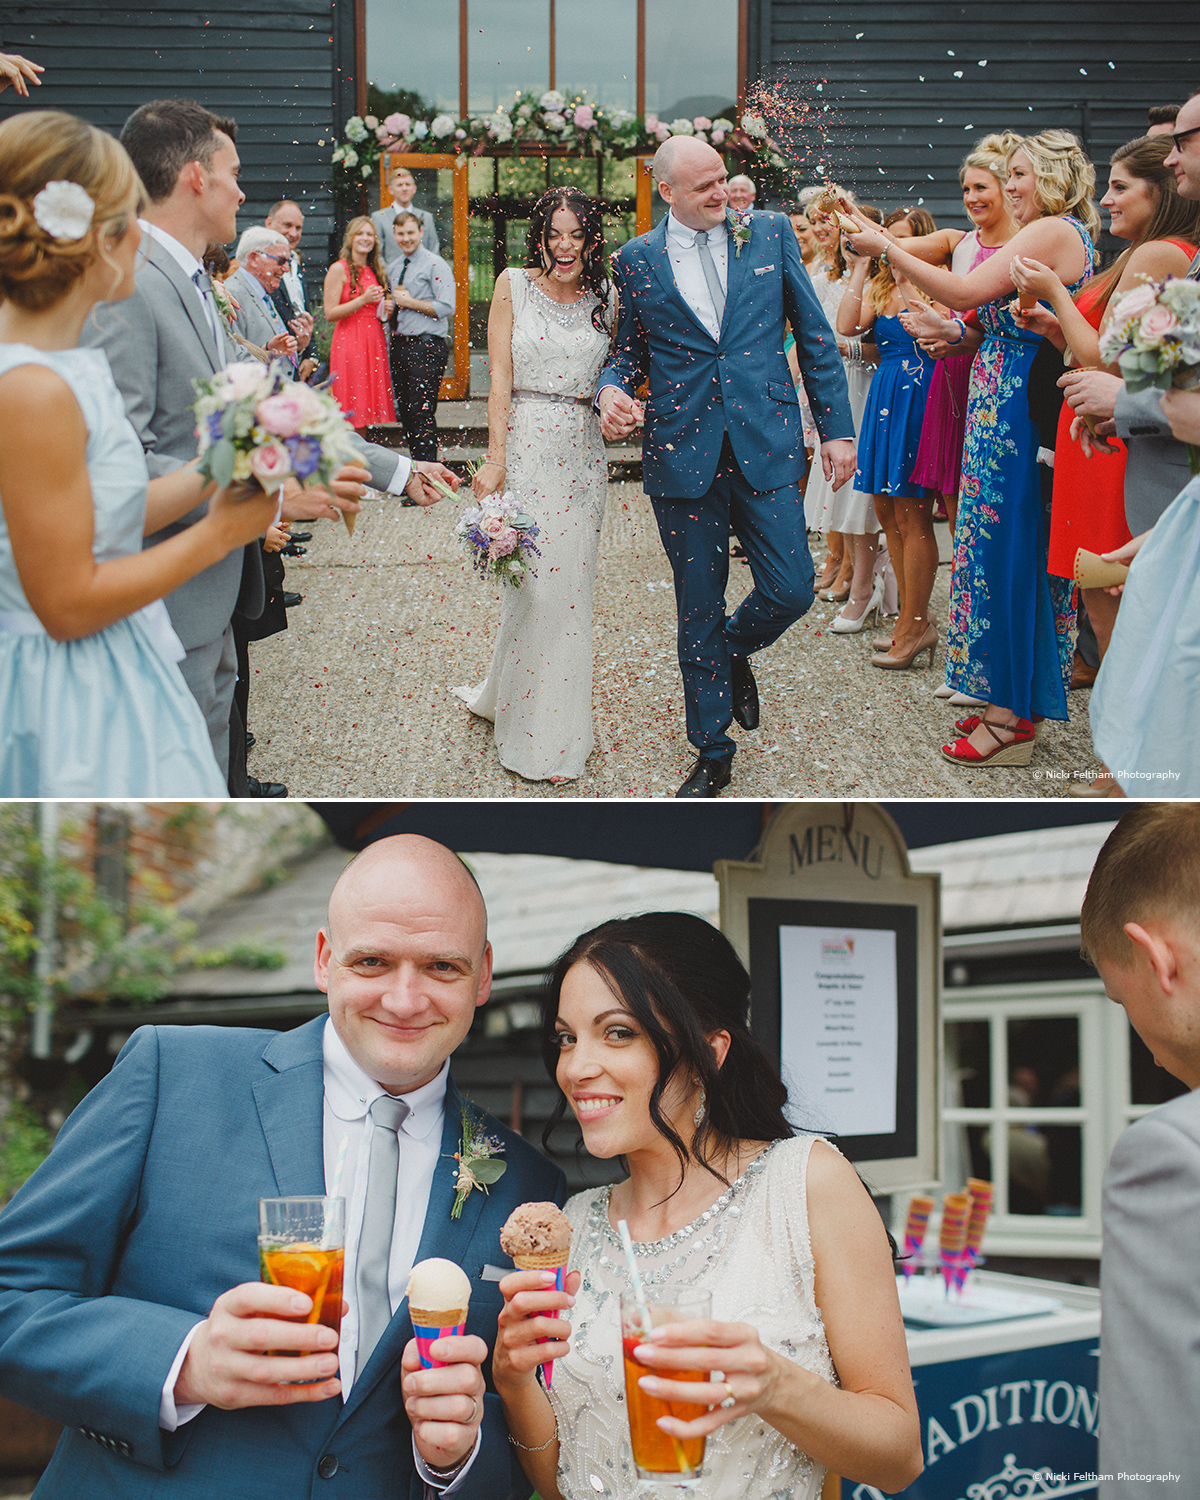 The bride and groom celebrating with ice cream at Upwaltham Barns - © Nicki Feltham Photography